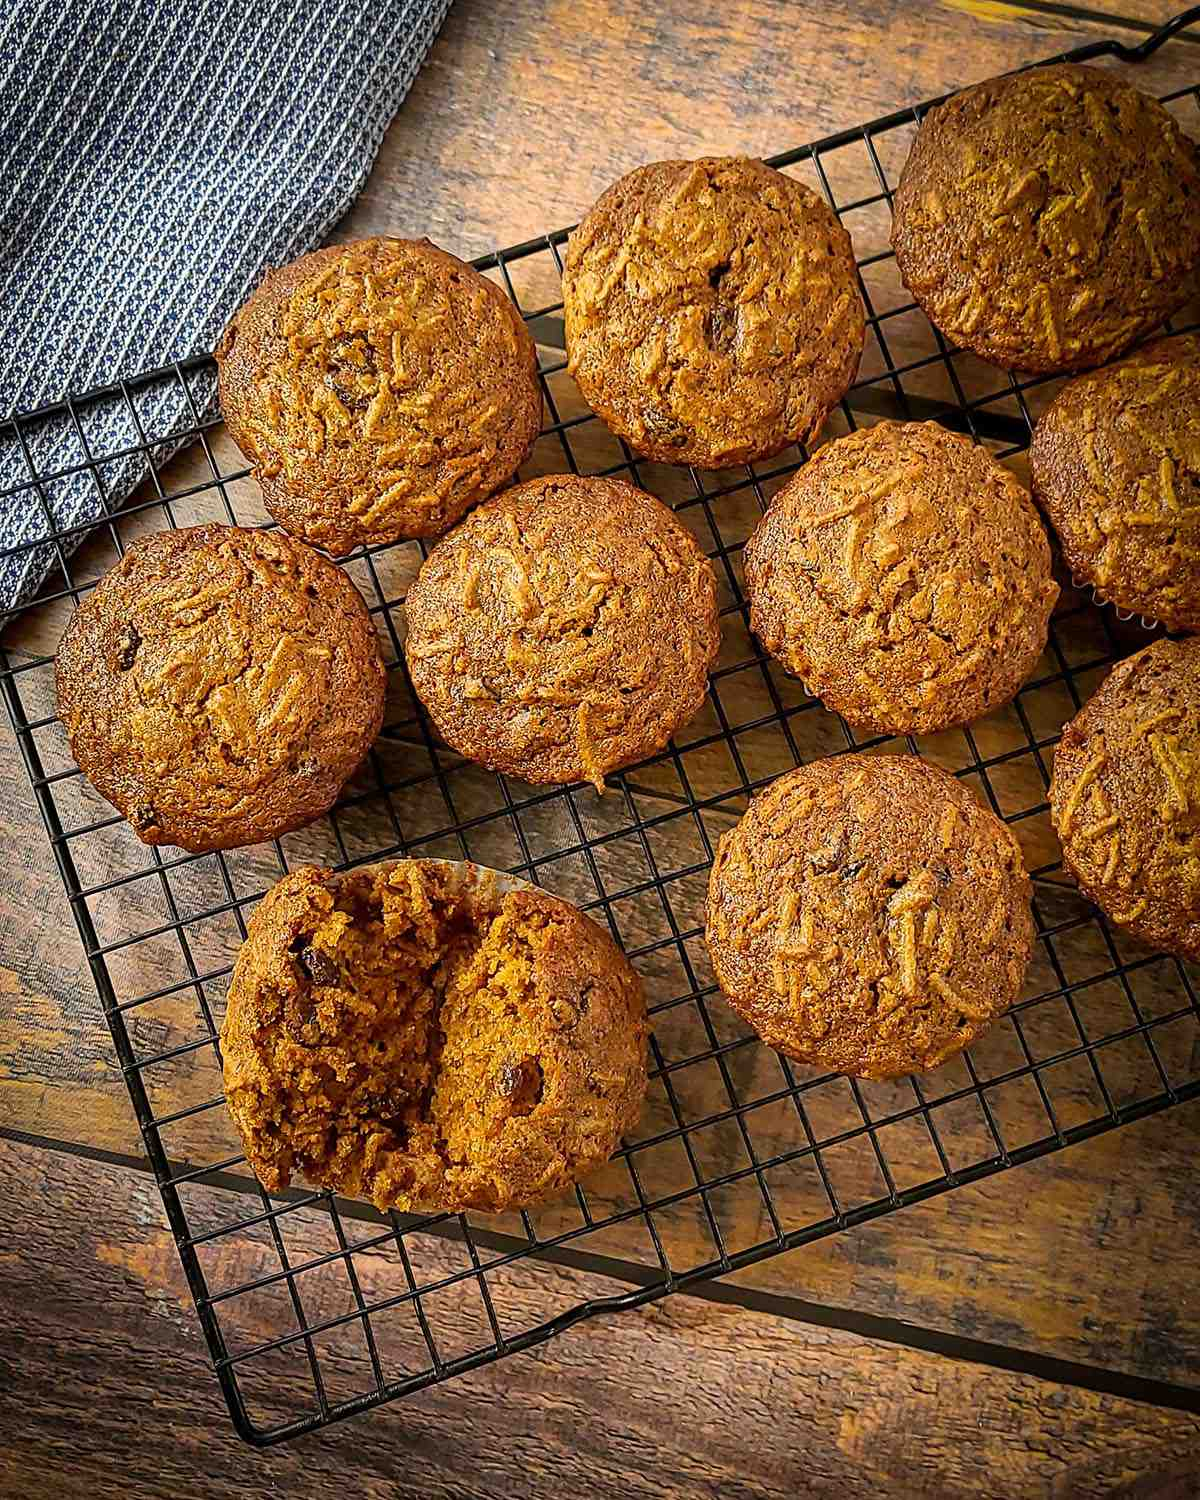 a rack of bran muffins with one split open